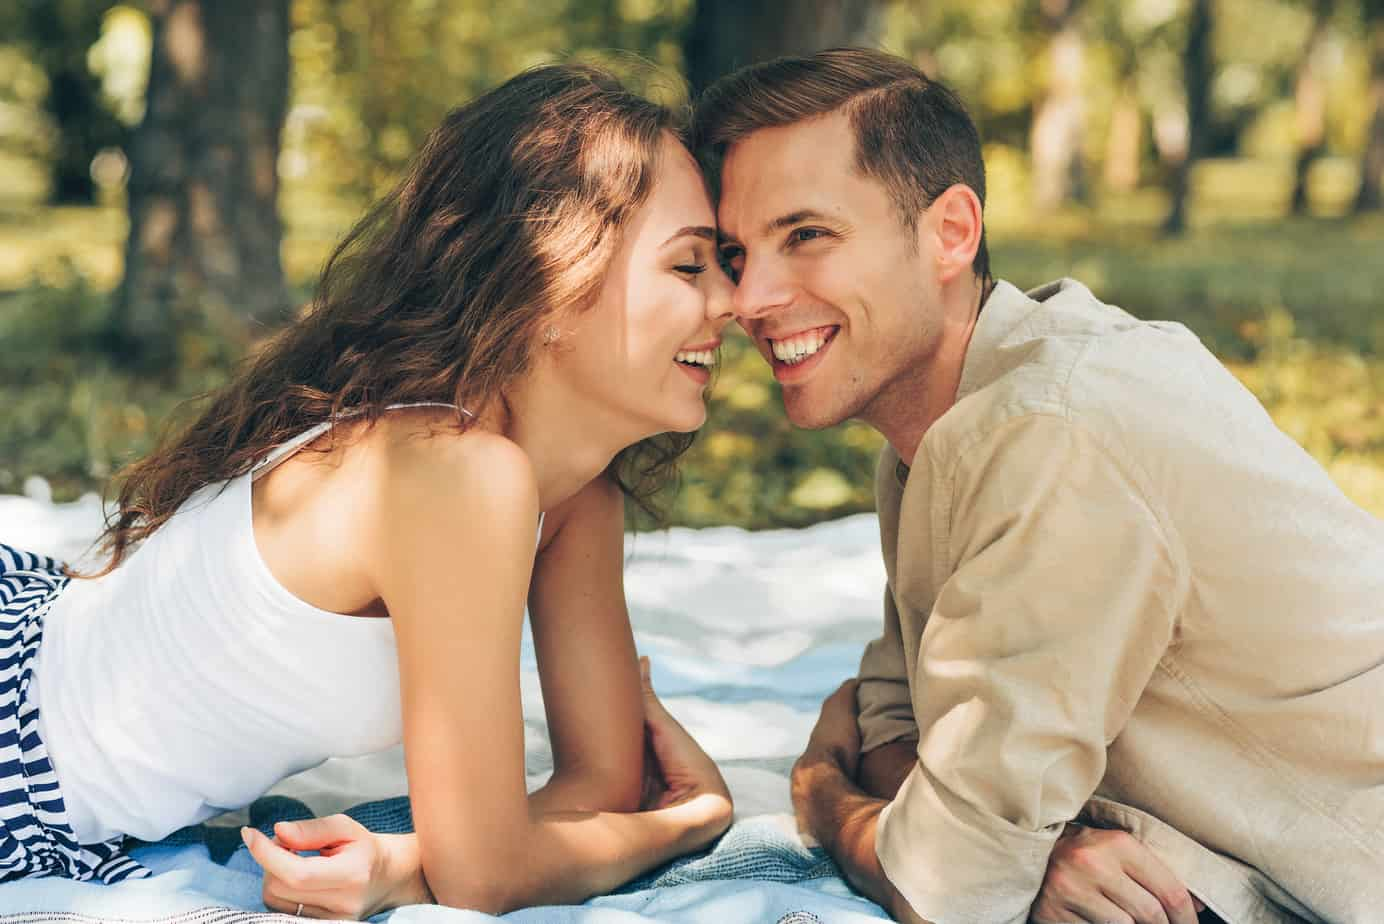 date night ideas for married couples - couple having picnic outside in grass